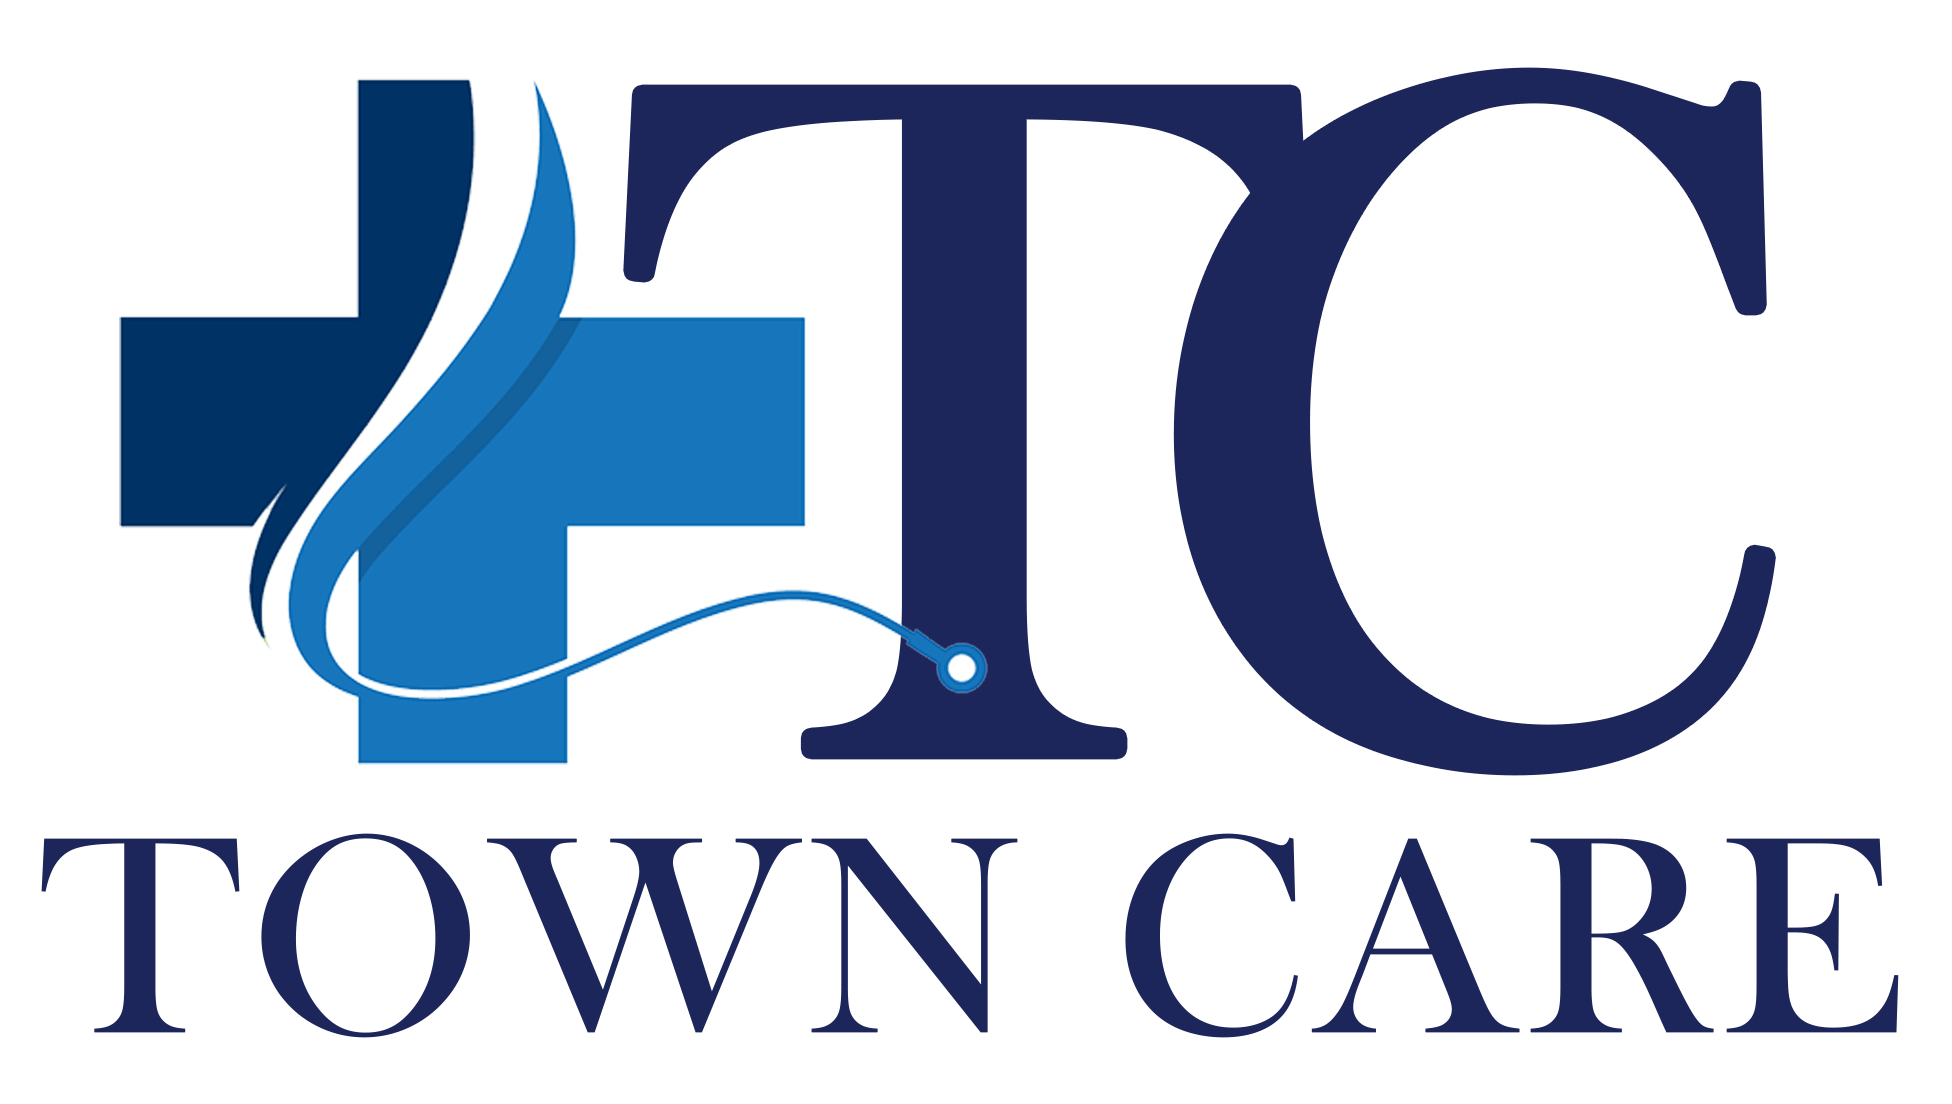 Town Care Medical Clinic